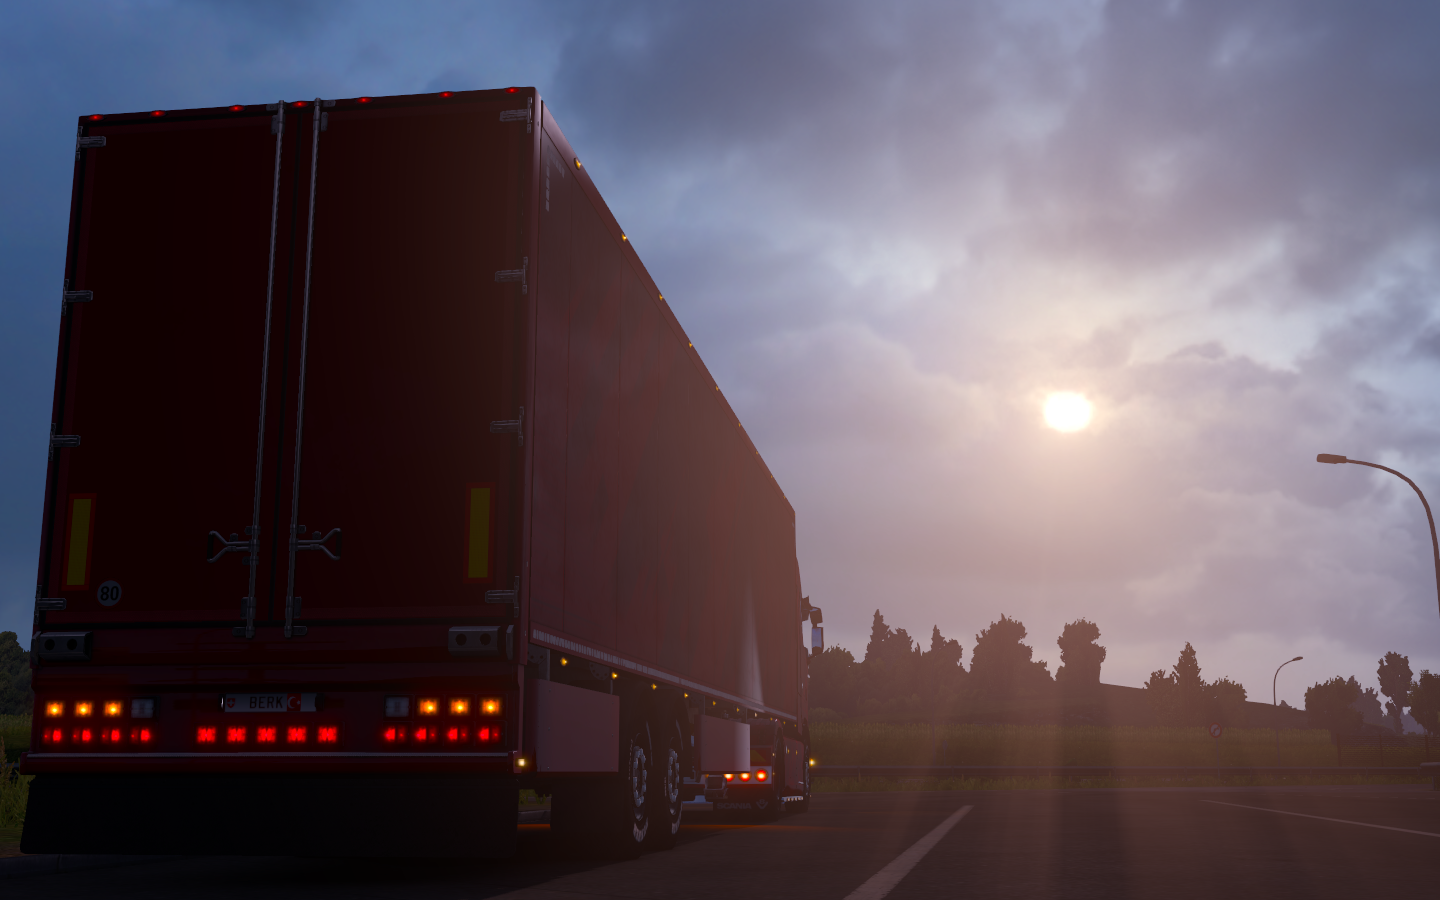 ets2_20190413_121808_00.png